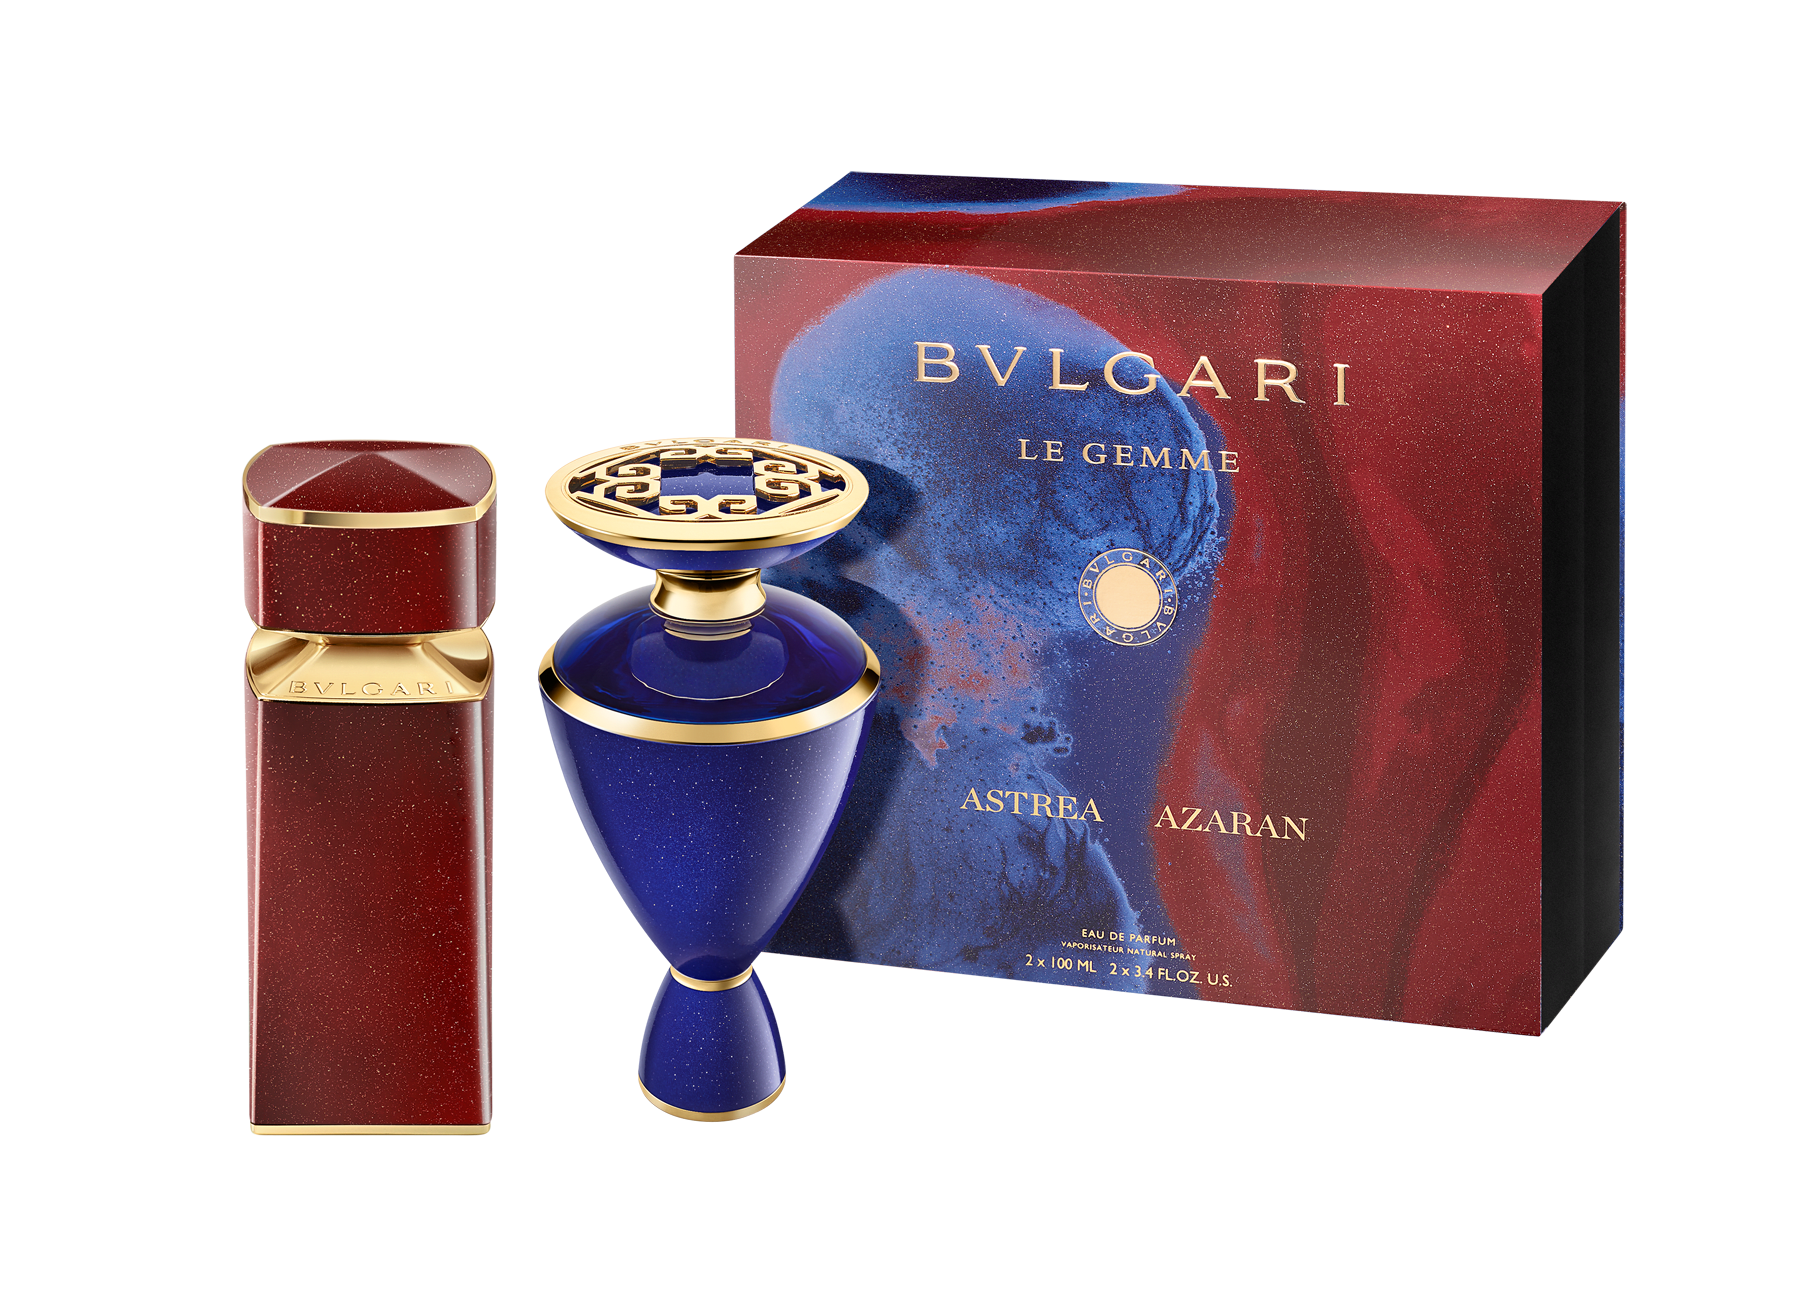 The encounter of two gems of nature: the iridescent Aventurine gemstone and precious Saffron spice harmoniously give way to this magnificent new fragrance collector's duo 41507 image 2